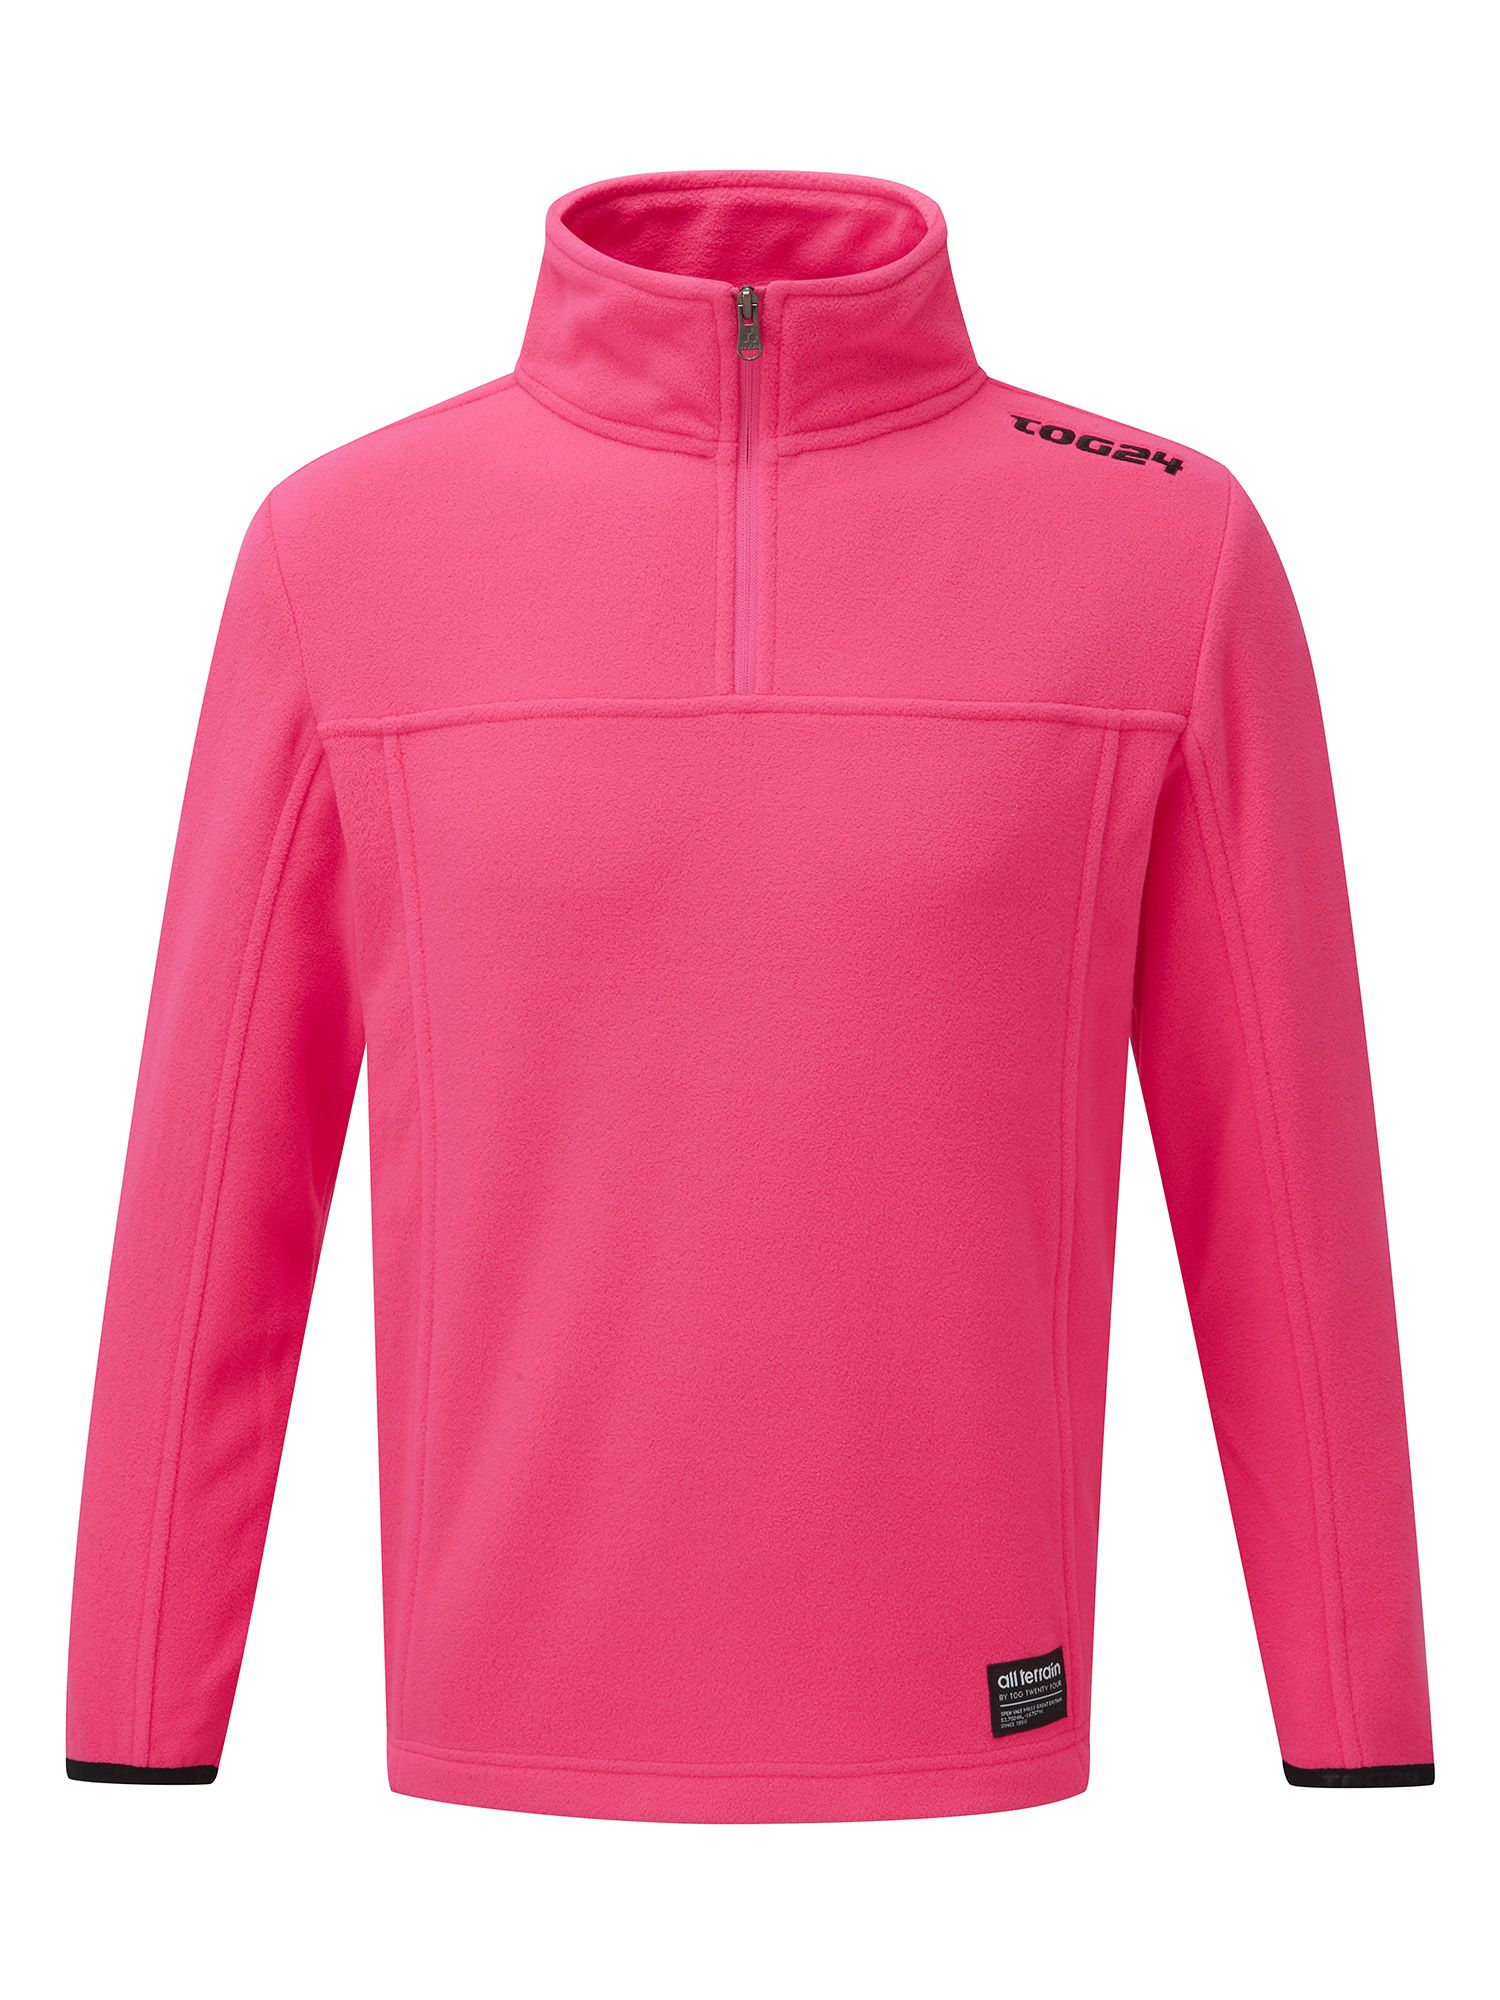 Photo of Tog 24 halo kids tcz 100 fleece zip neck- pink